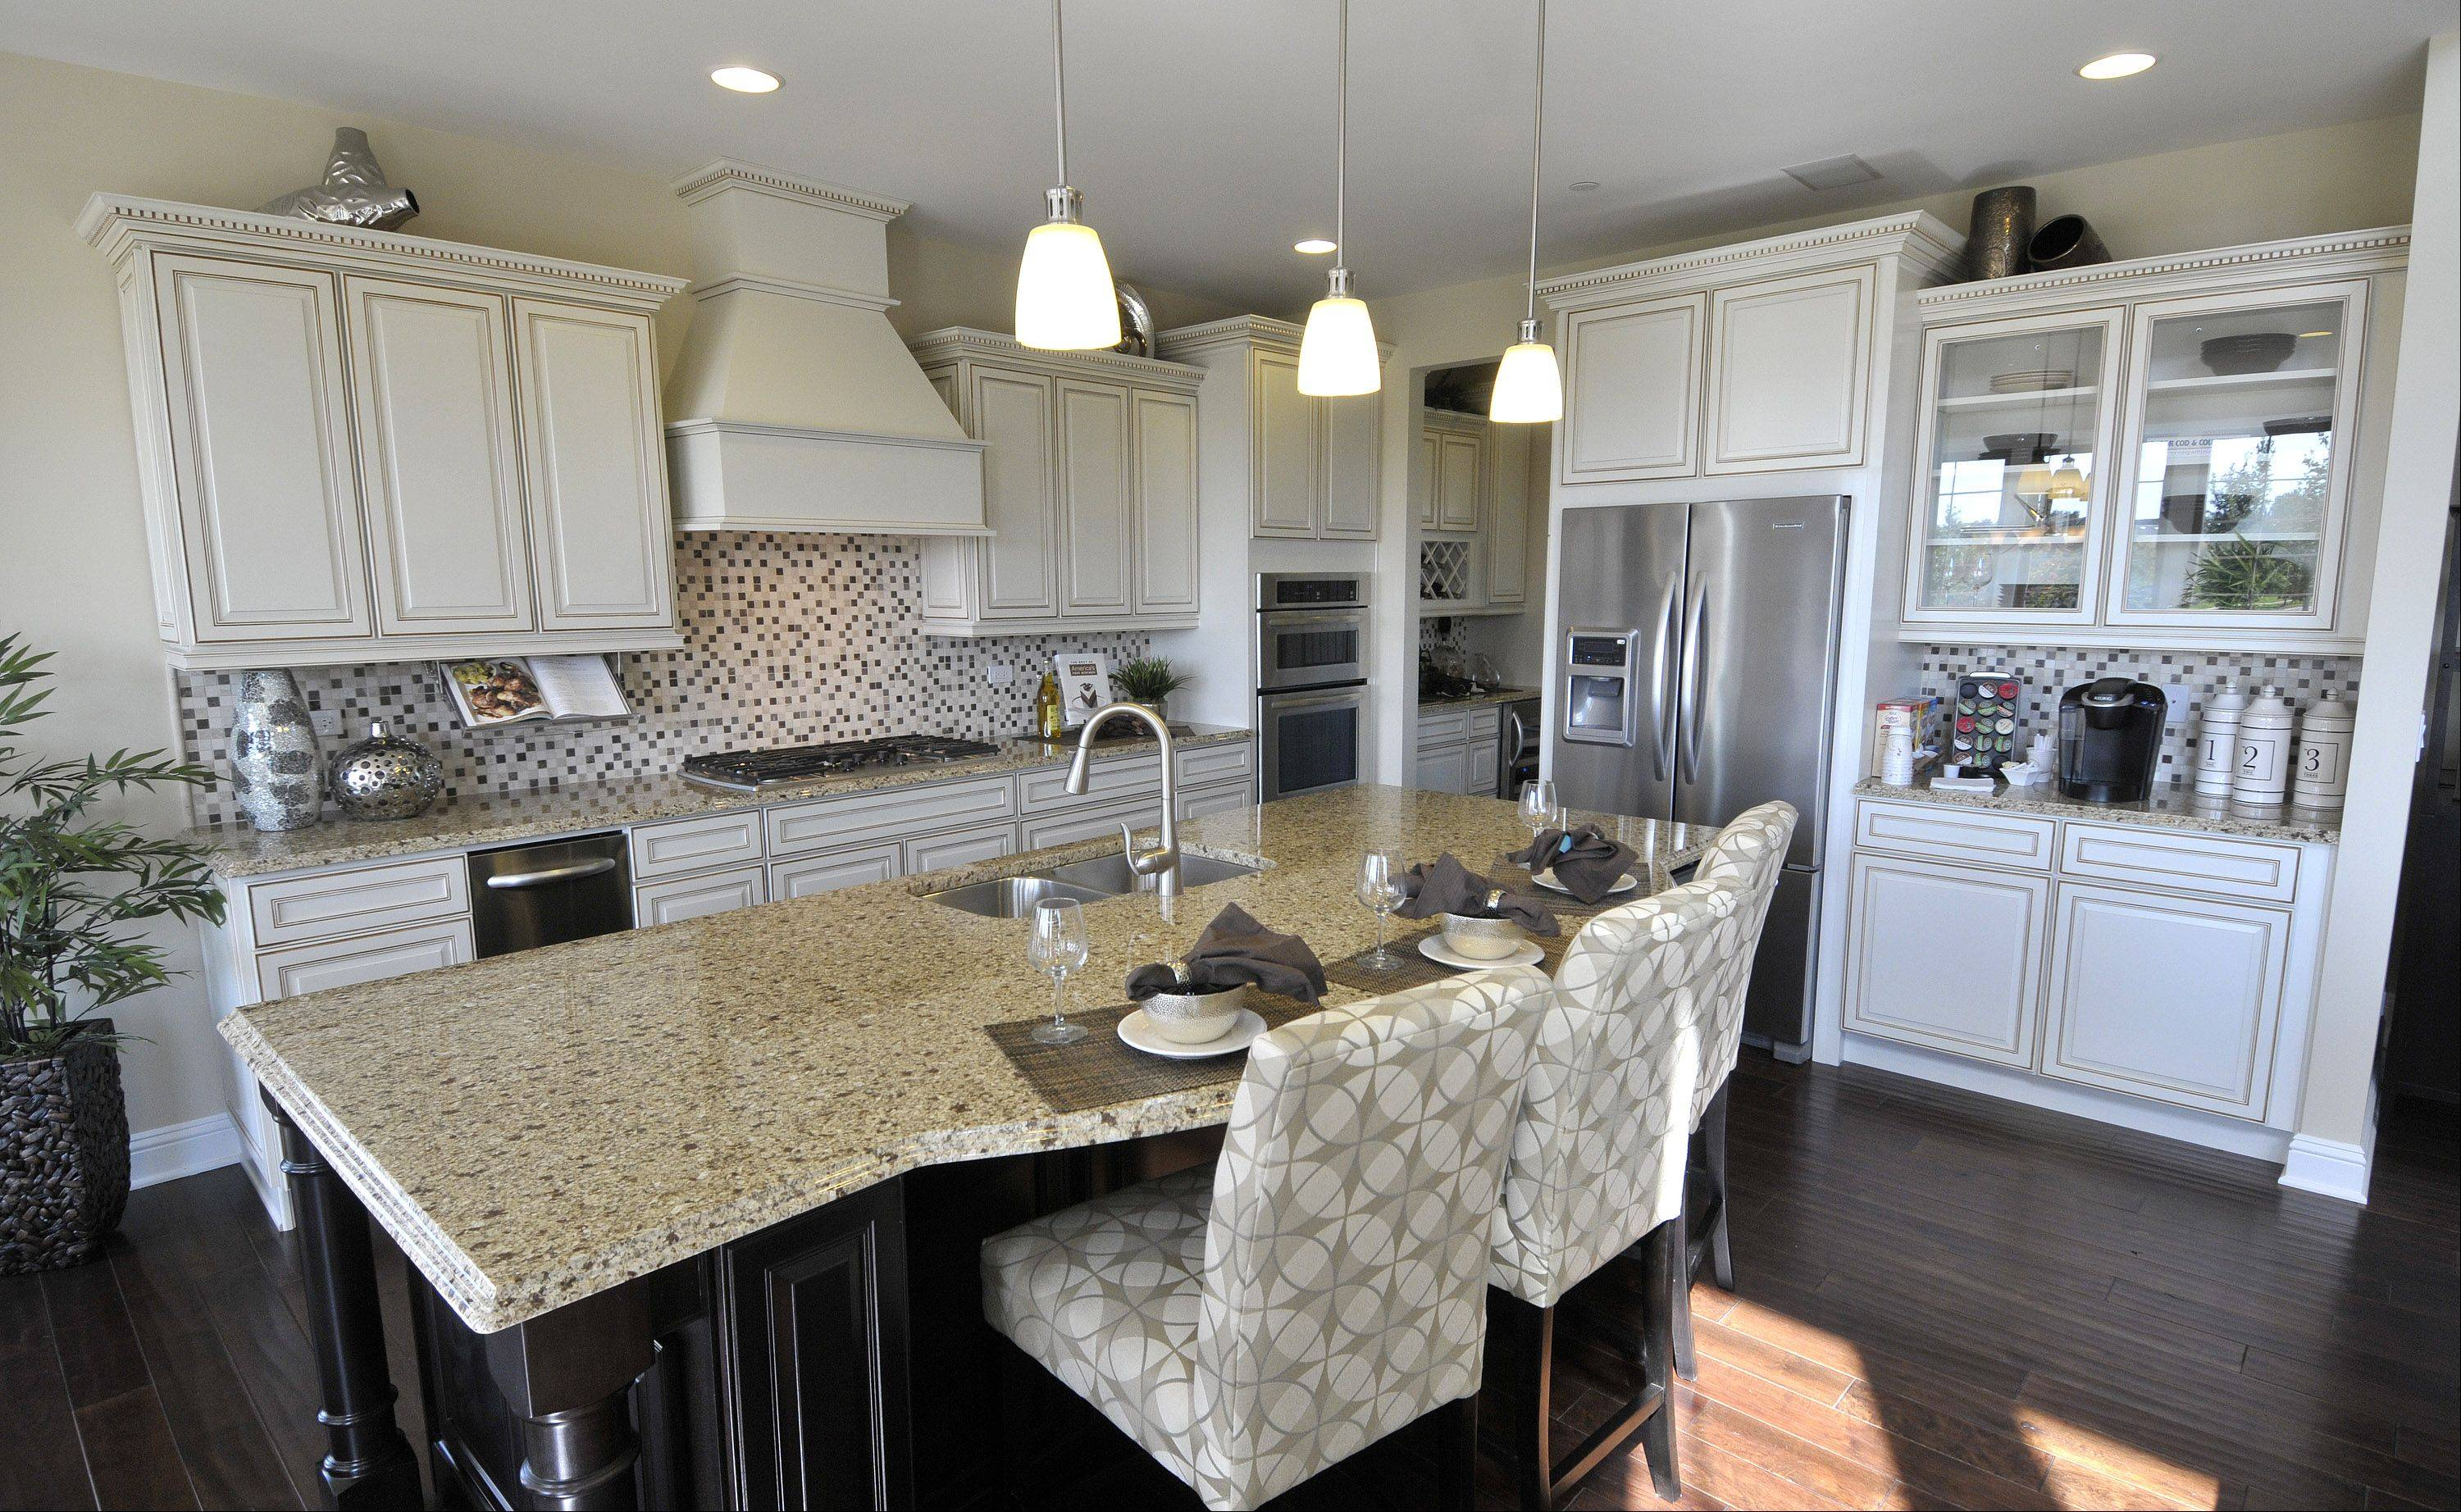 The kitchen in the Naples model at the Savoy Club development in Burr Ridge.